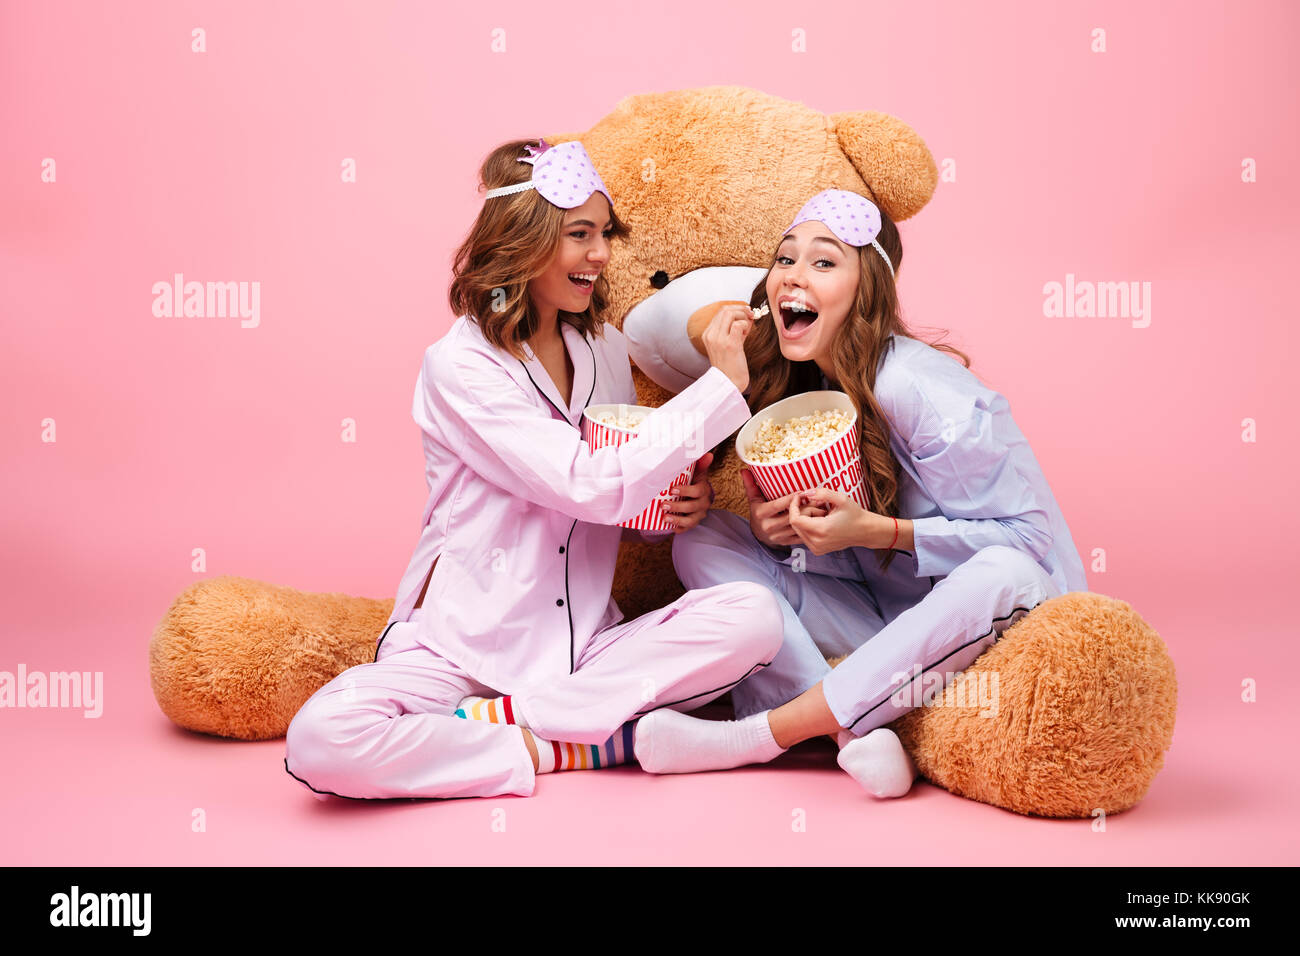 Two cheerful pretty girls dressed in pajamas sitting with a big teddy bear  and eating popcorn isolated over pink background 19b0c46d9